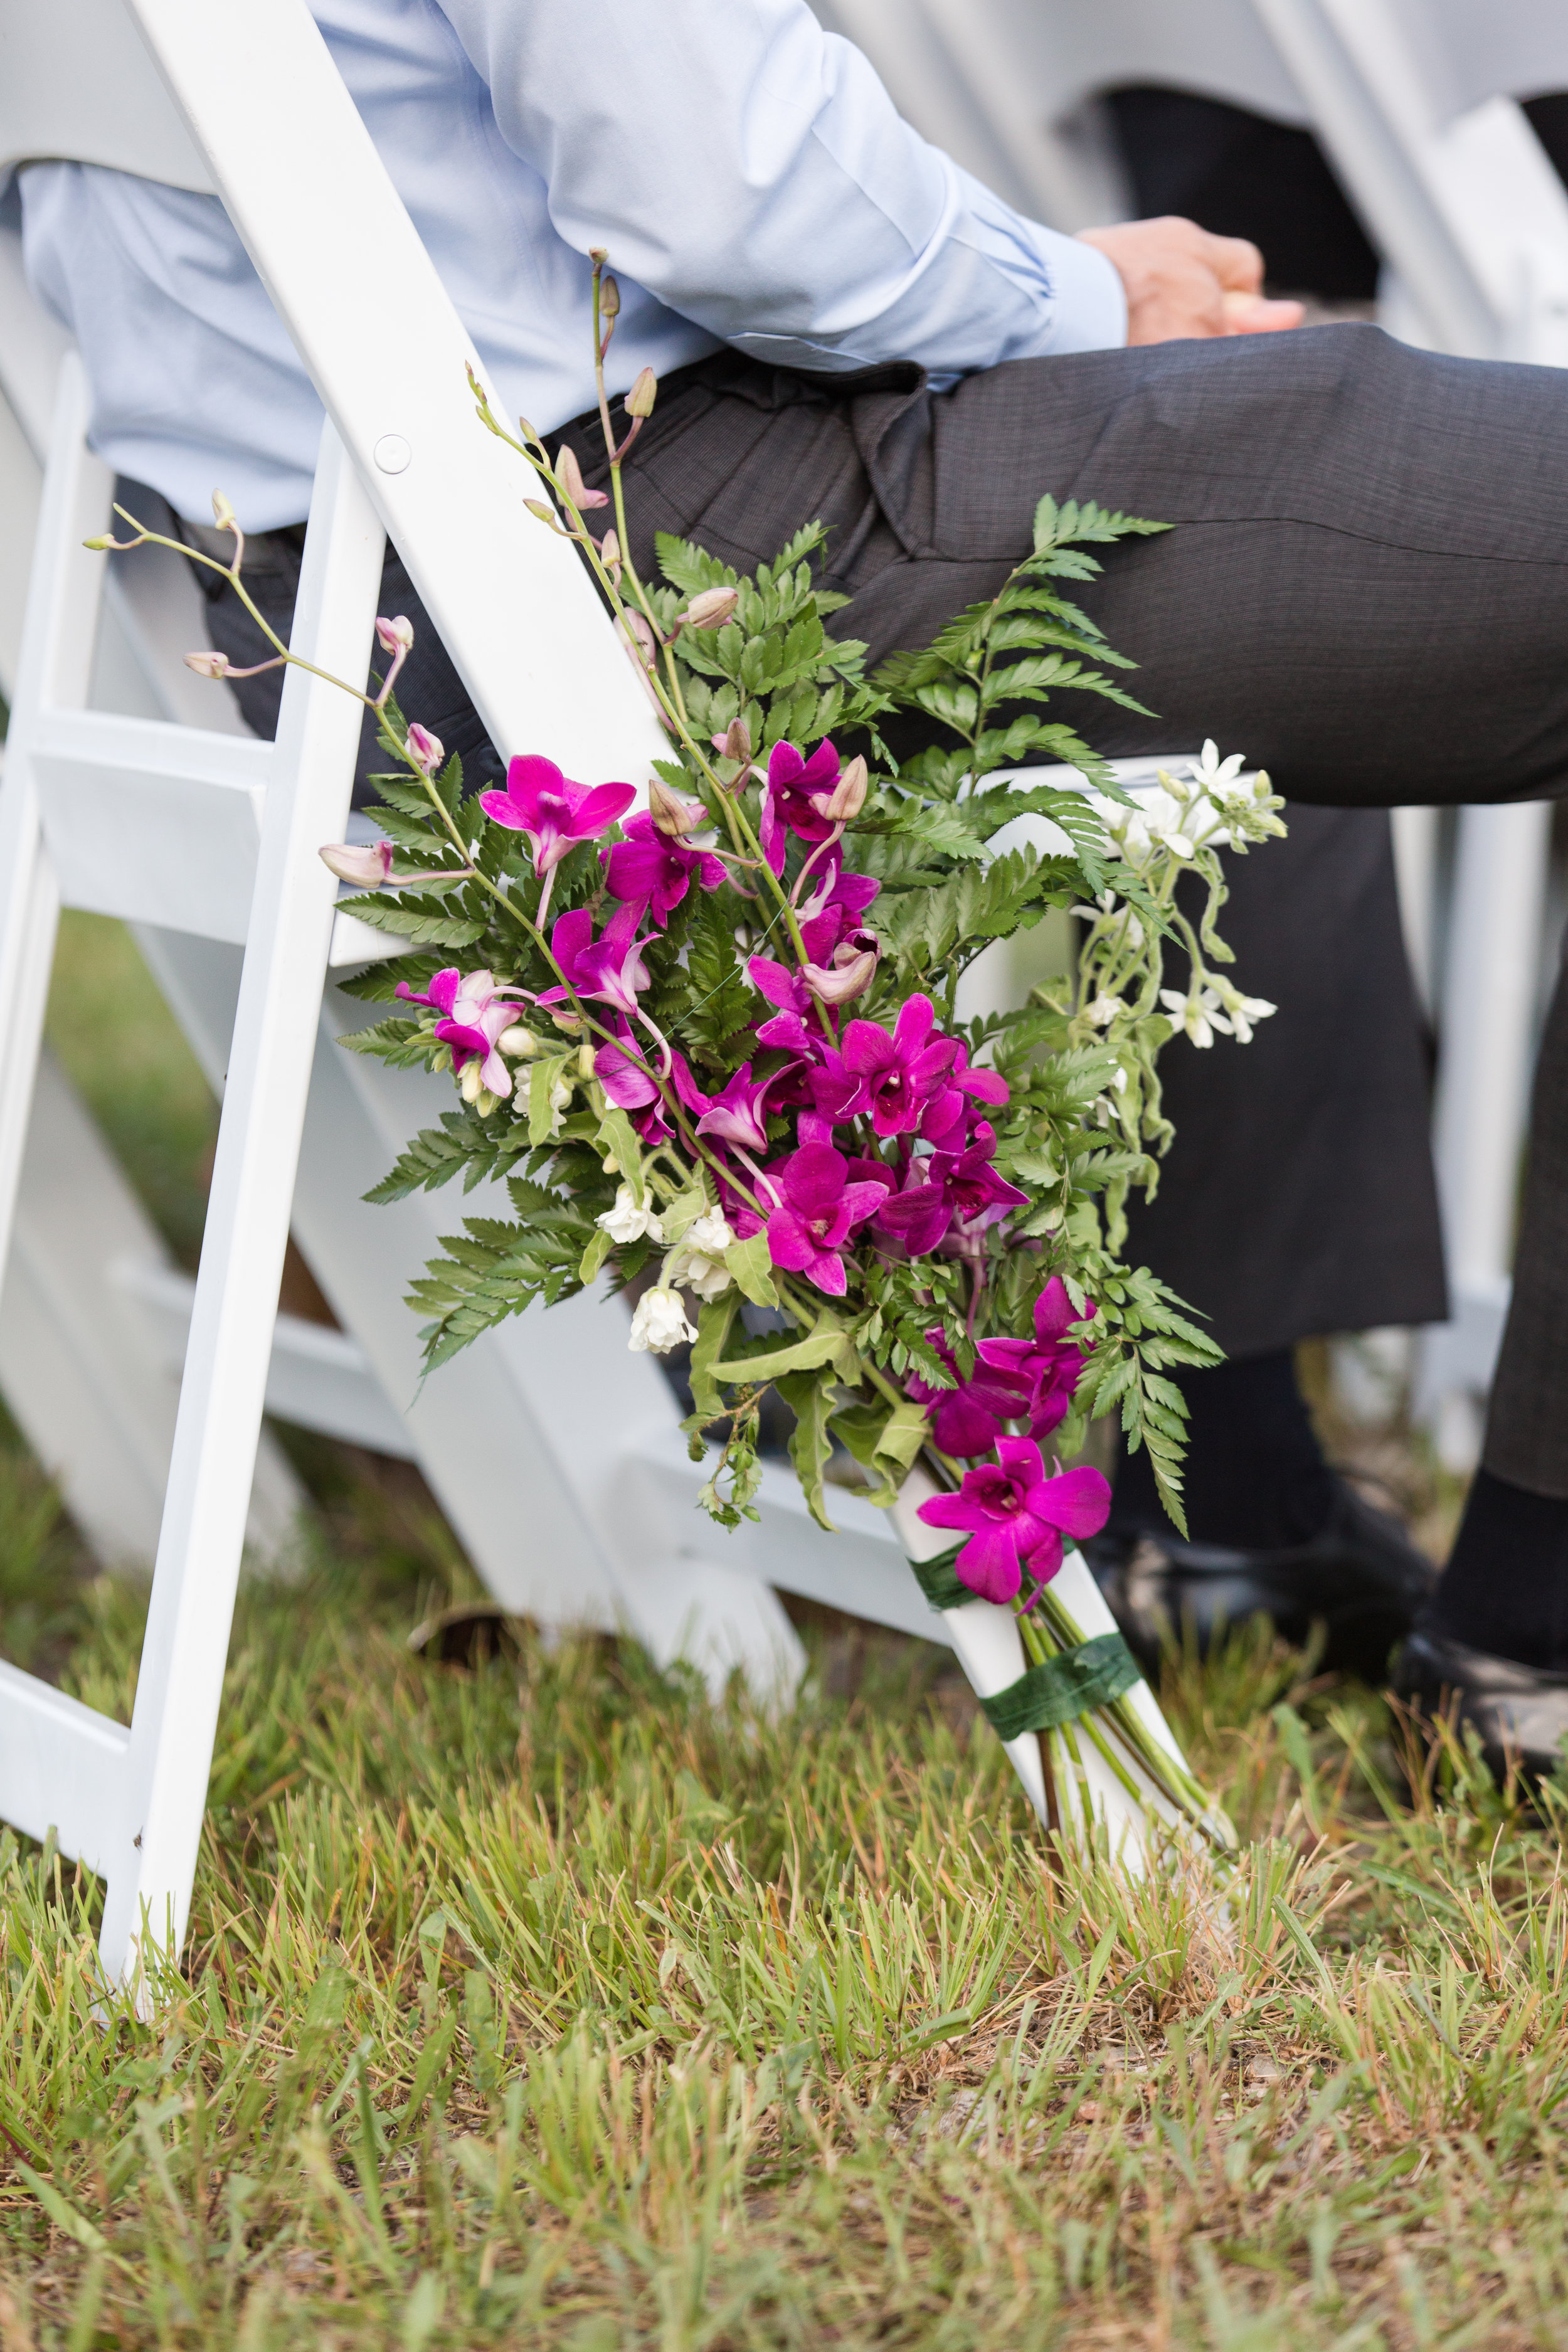 authentic genuine wedding photography in wv - aisle decoration- diy flowers- lakeside mountain wedding wv